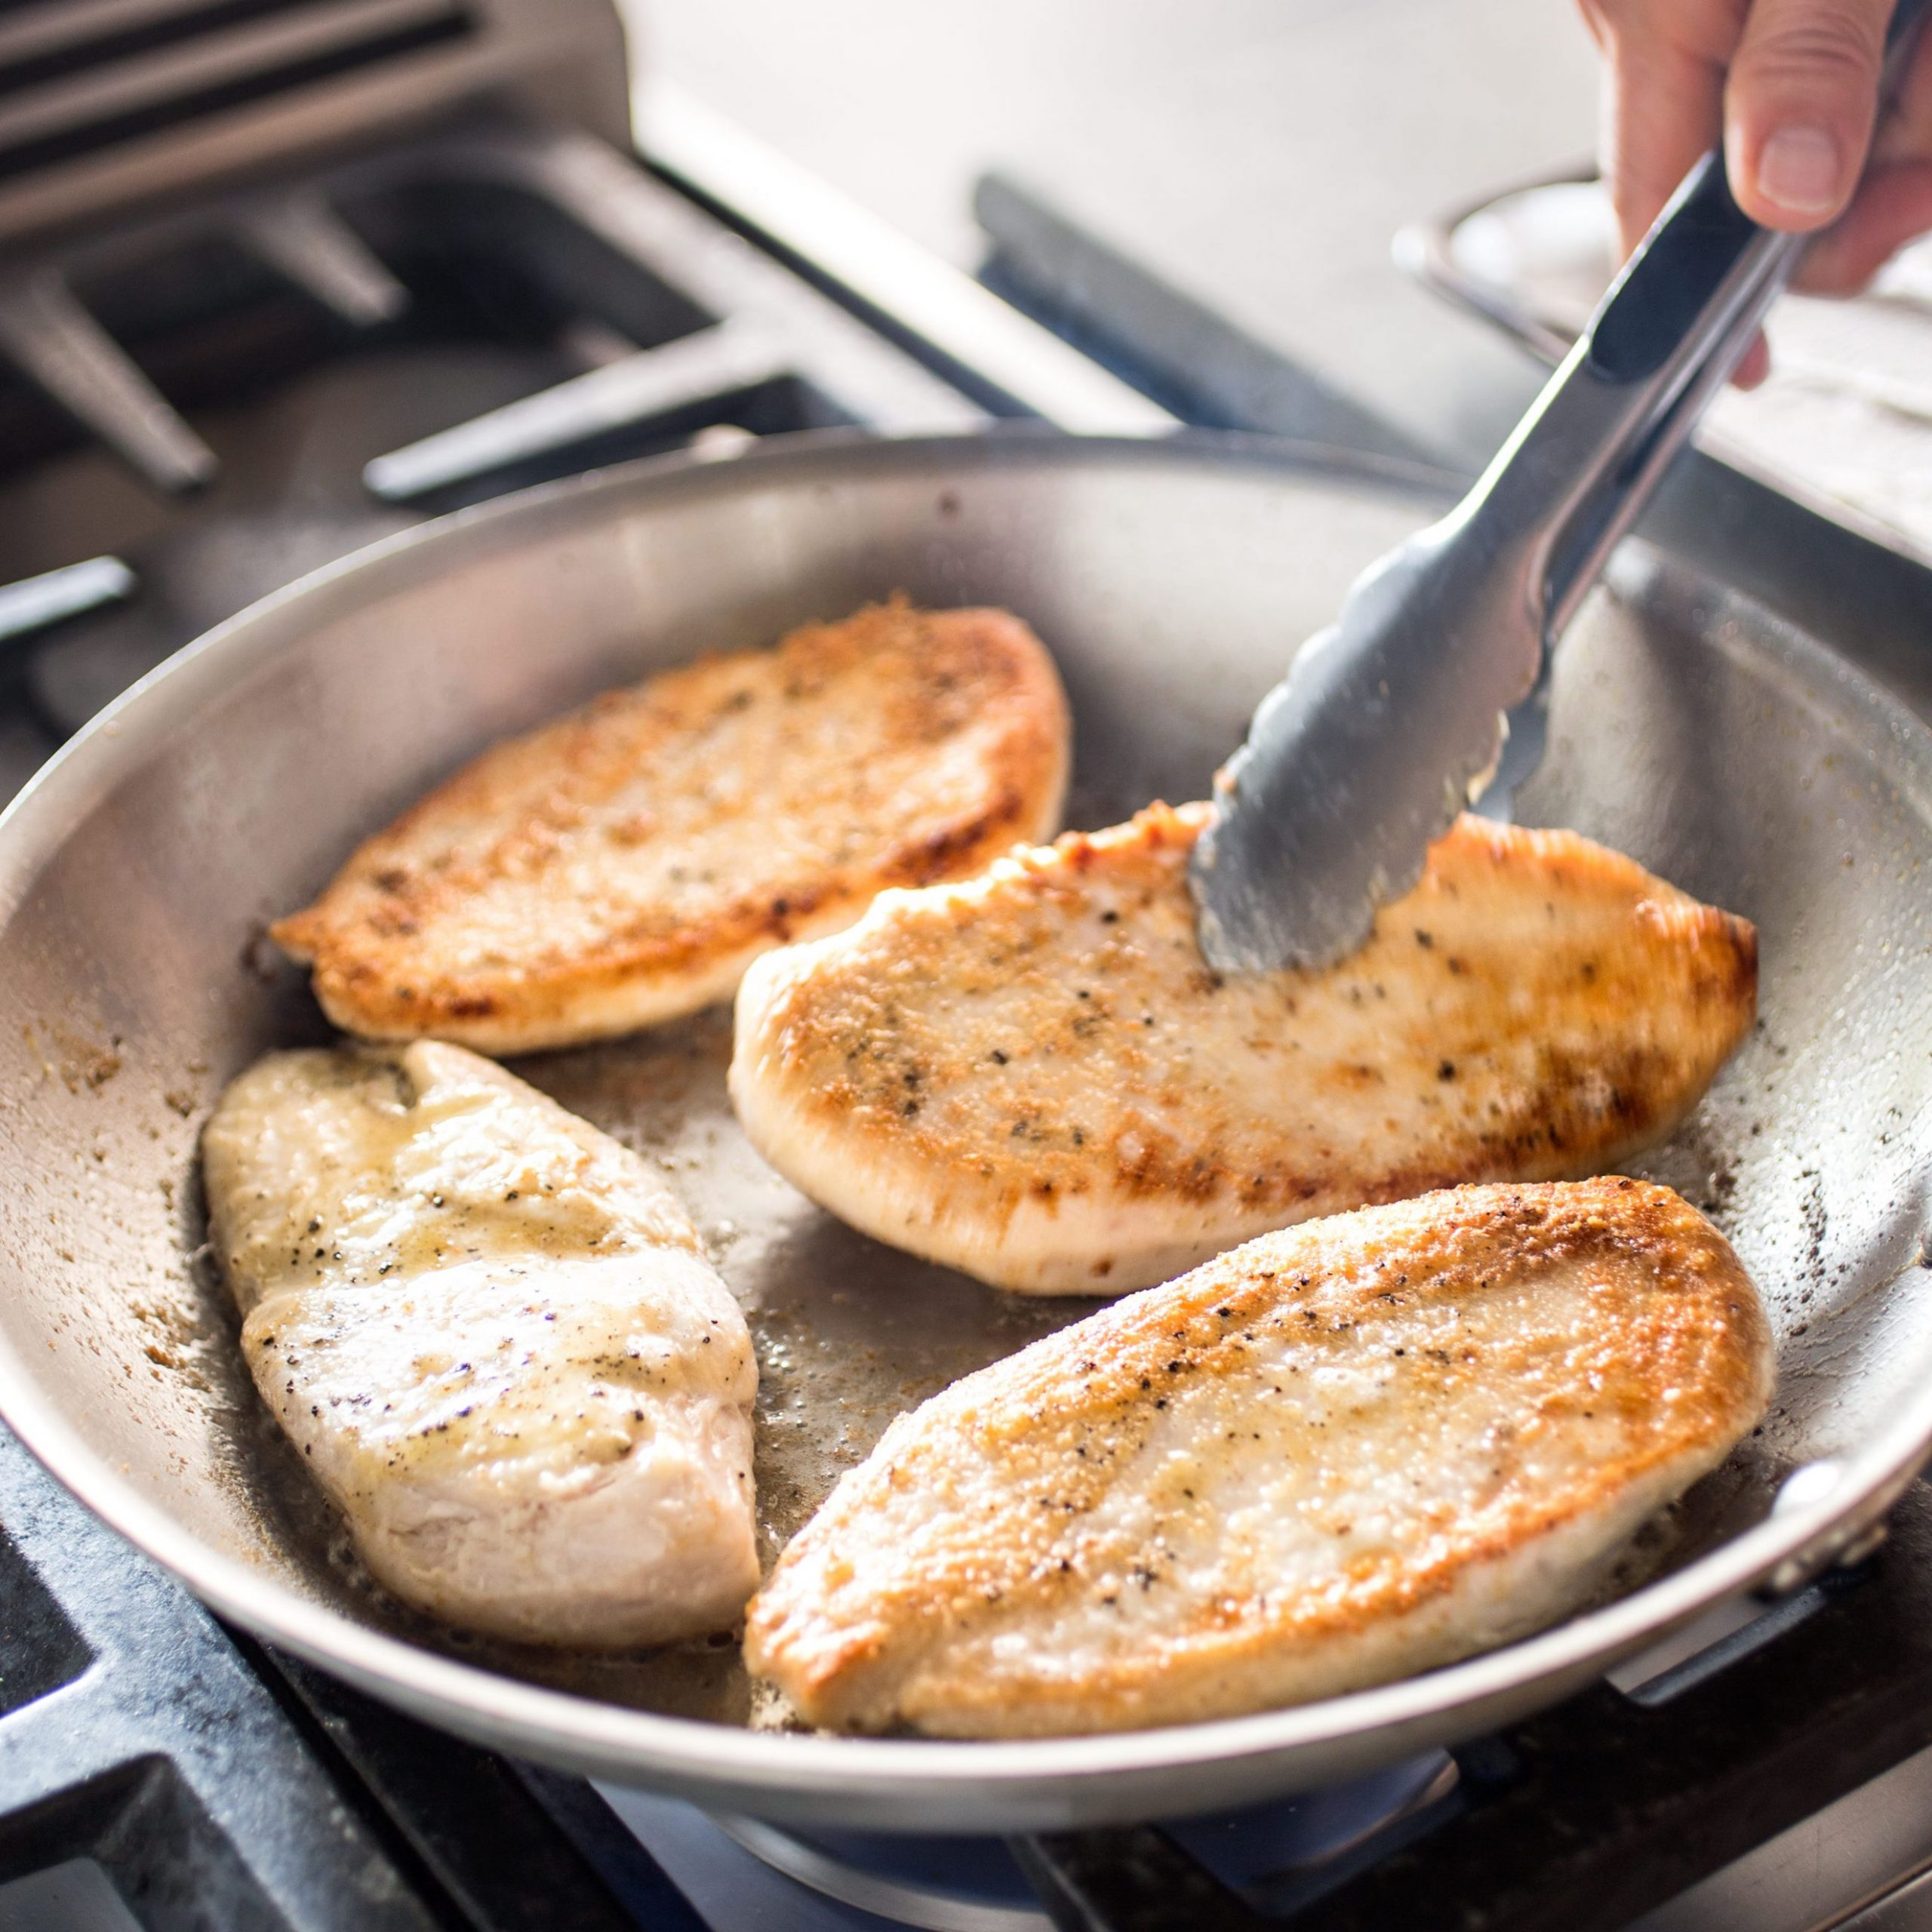 Pan-Seared Chicken Breasts - Recipes Chicken Breast Pan Fried